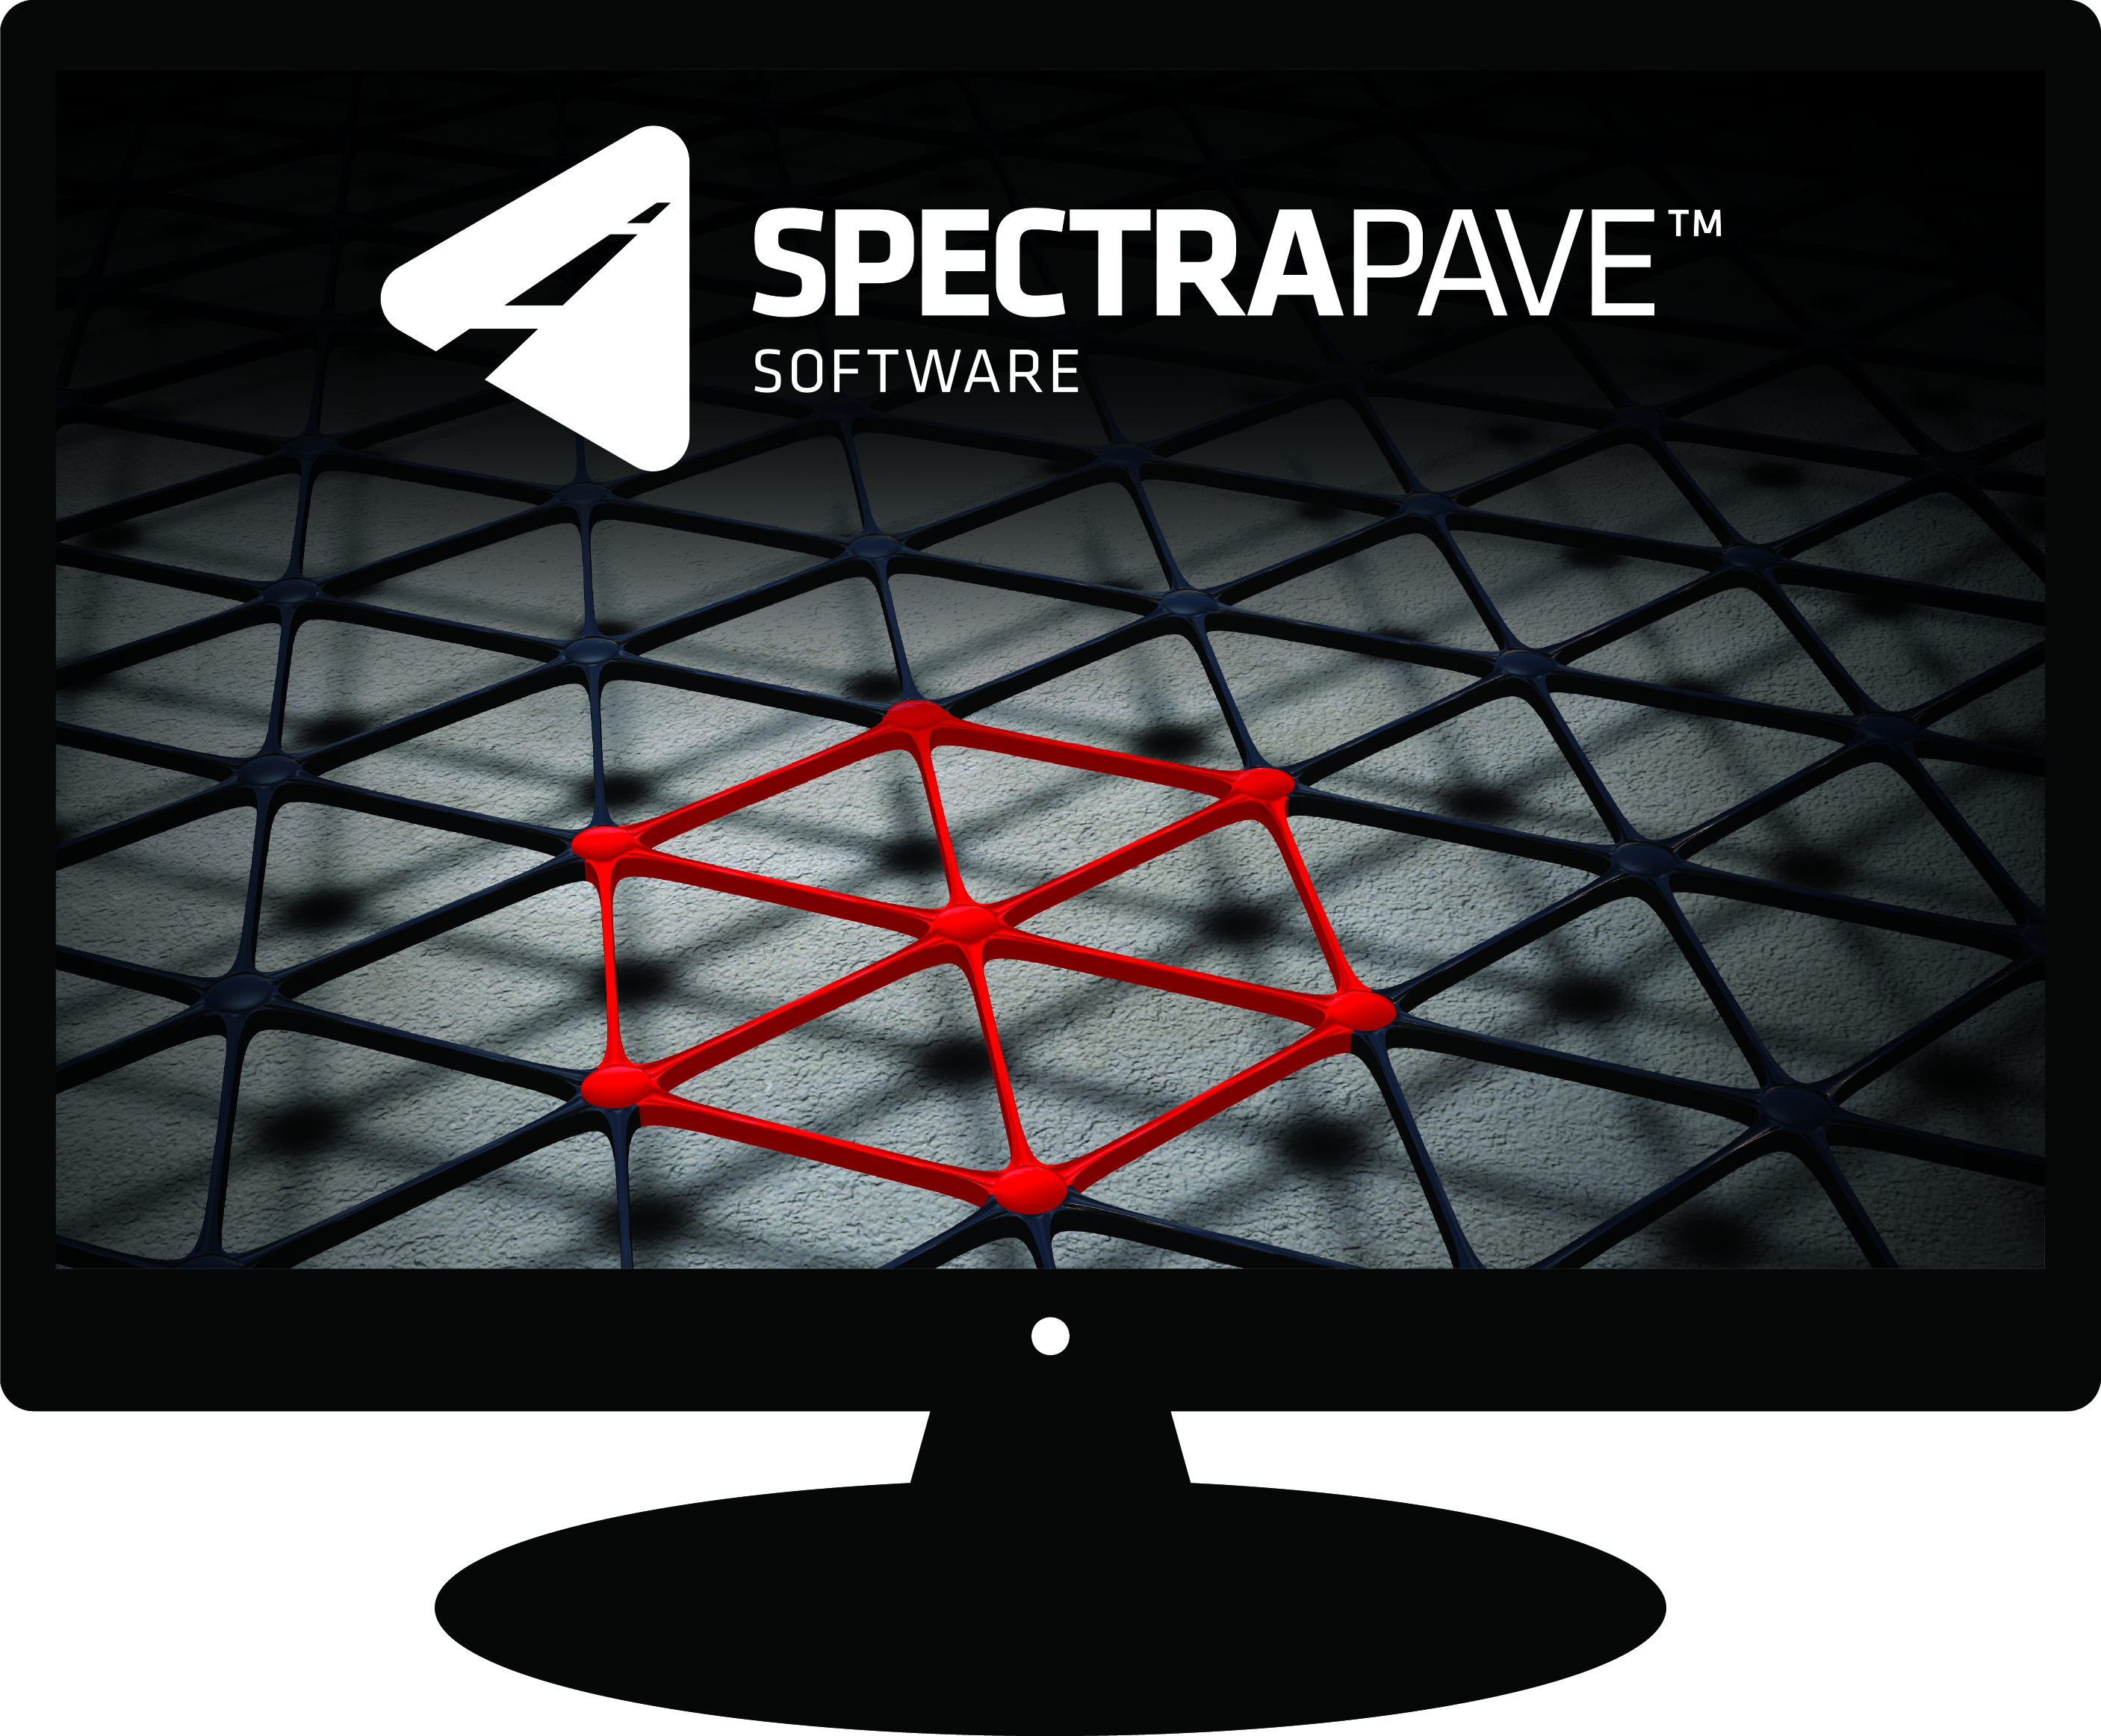 SpectraPave Pavement Design Software